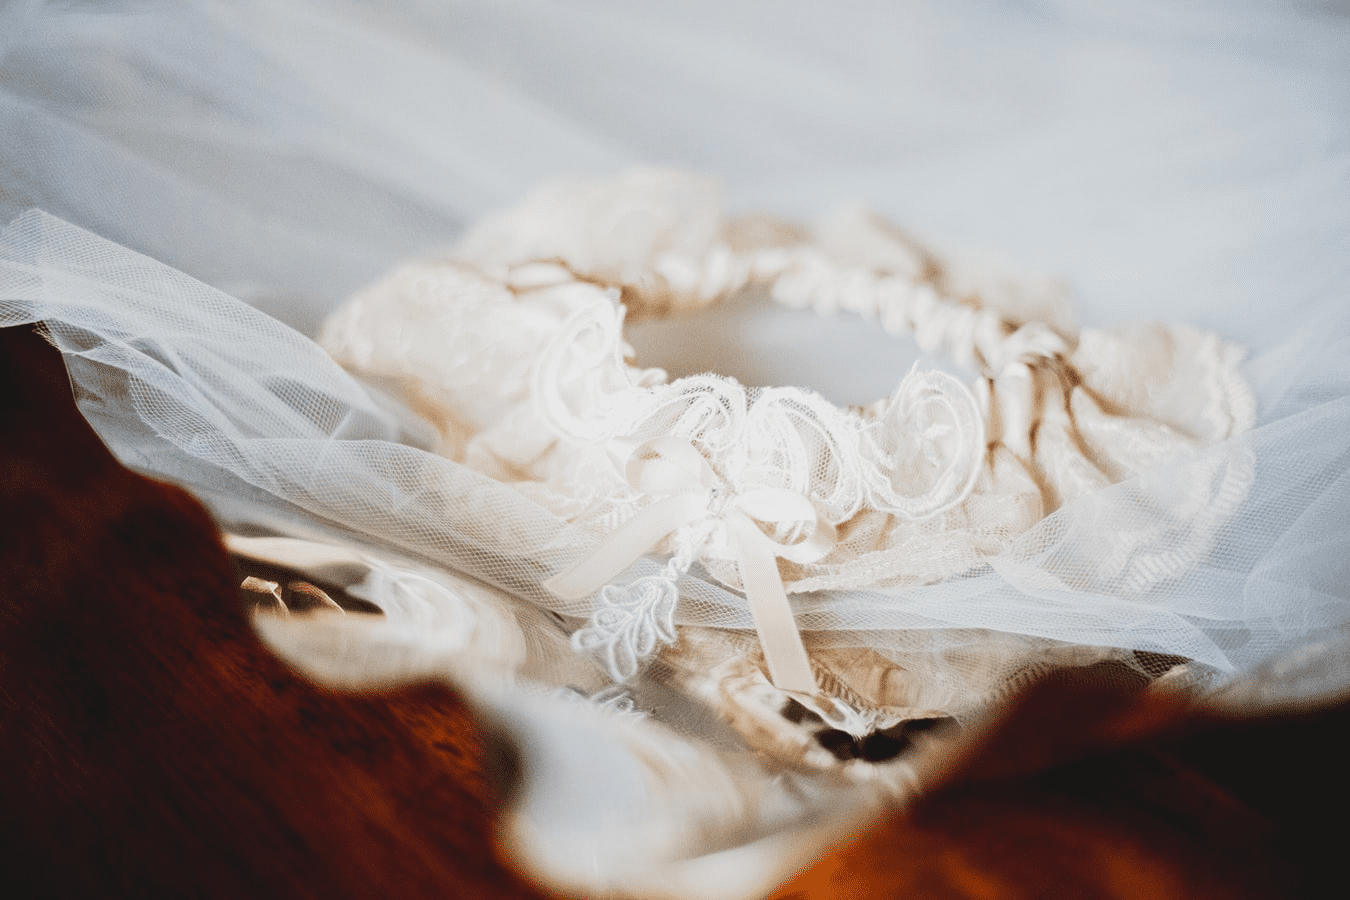 What Are Wedding Garters For?